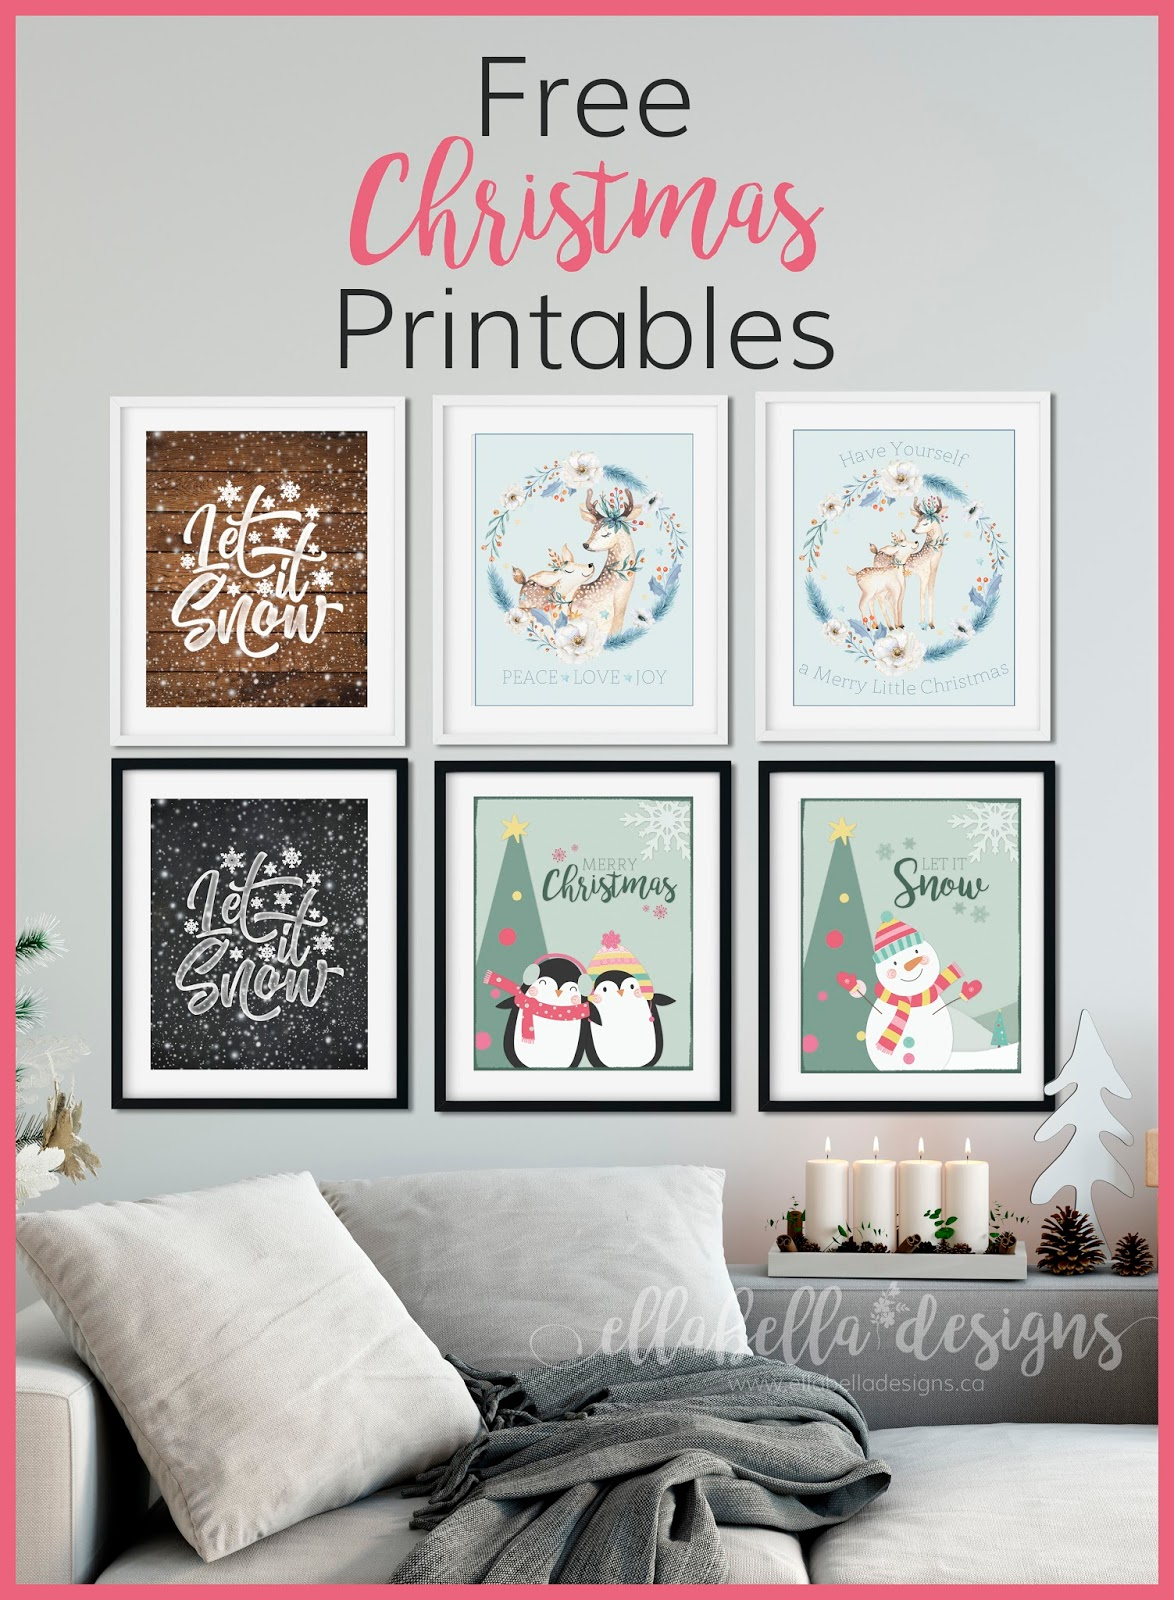 Ellabella designs free christmas wall art decor printables please note printables are for personal use only no commercial use allowed do not alter printables in any way the scrapbooking housewife solutioingenieria Image collections